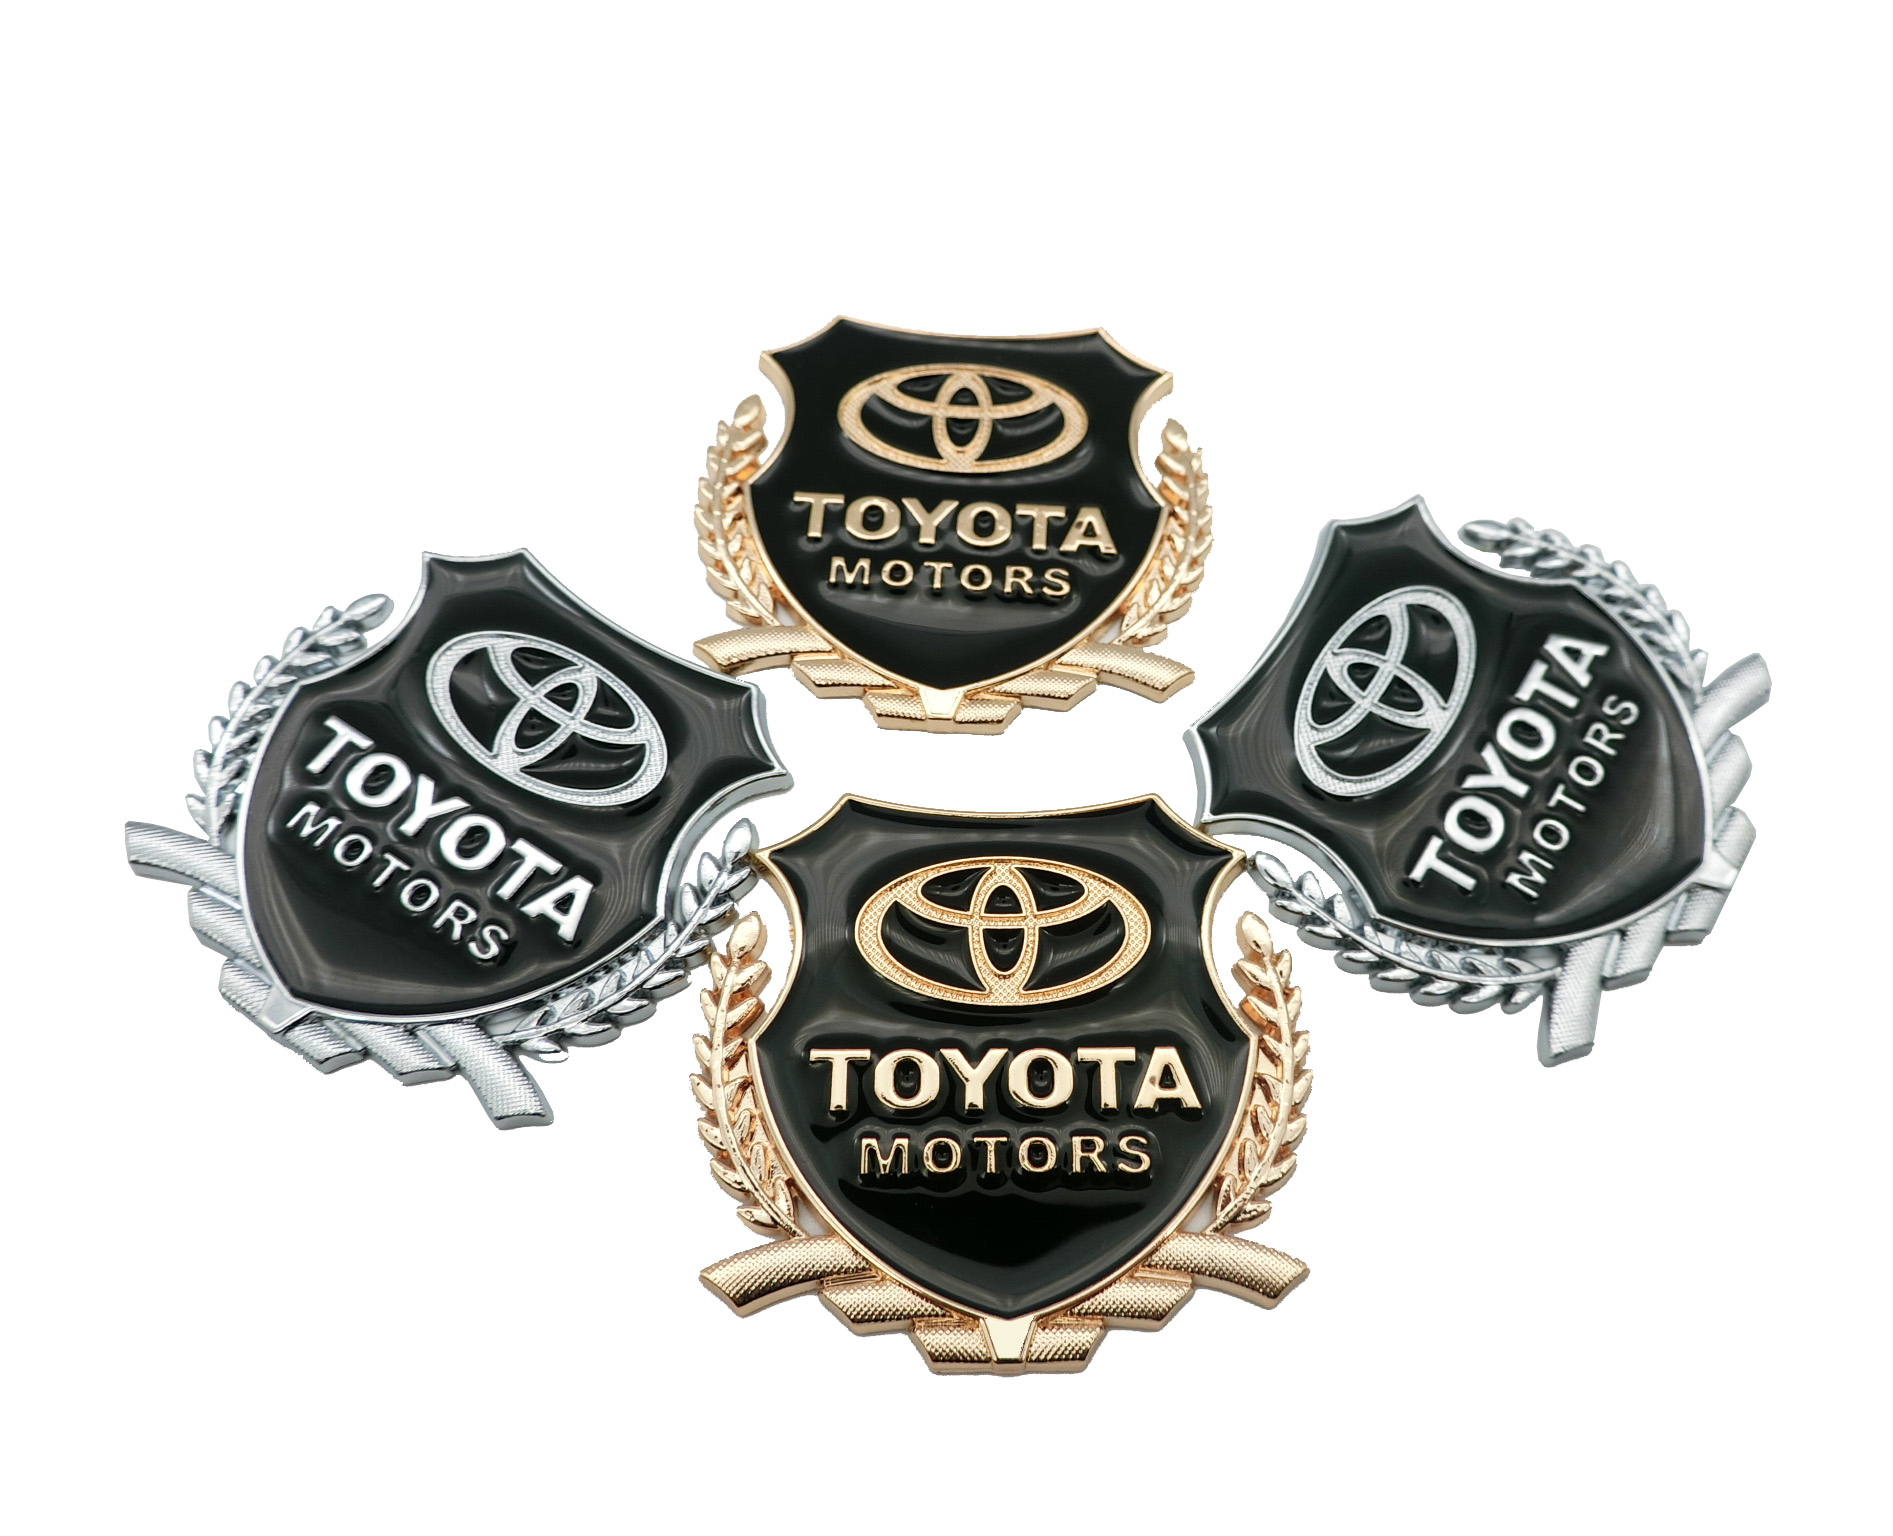 Metal Car Side Alloy Car Side Sticker Door Badge Stickers Side Window Emblem Decals For Toyota Camry Corolla RAV4 Highlander